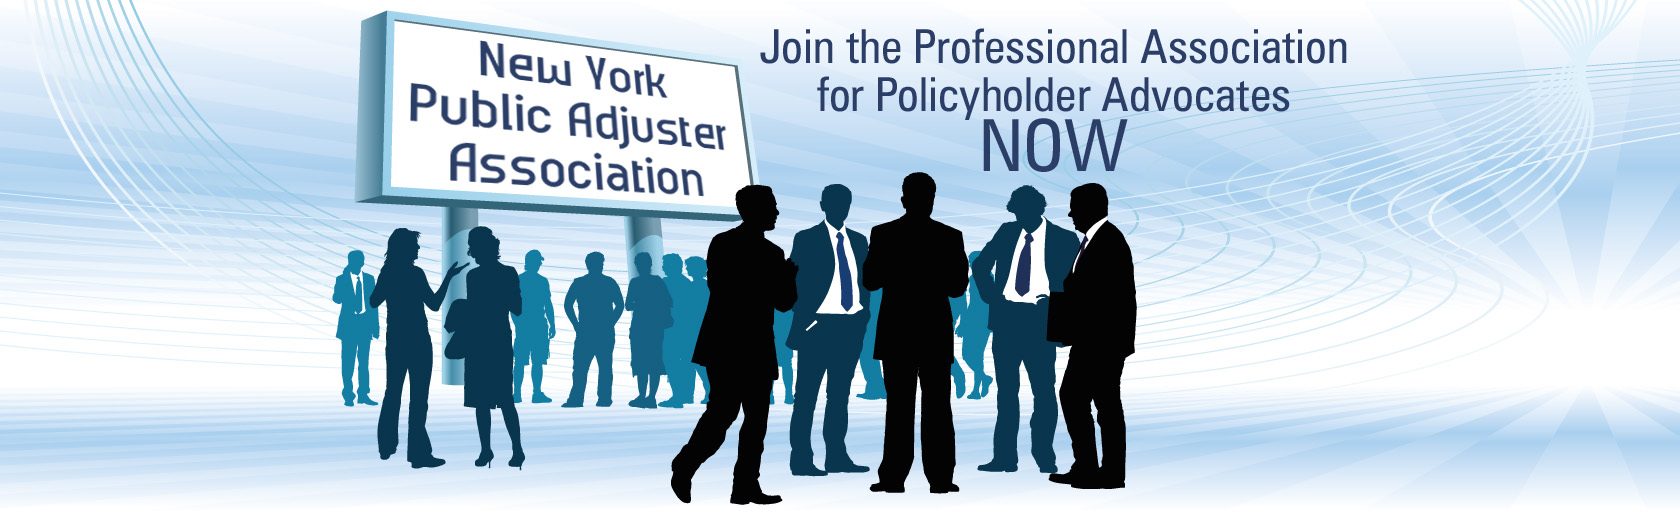 Join Nypaa New York Public Adjusters Association